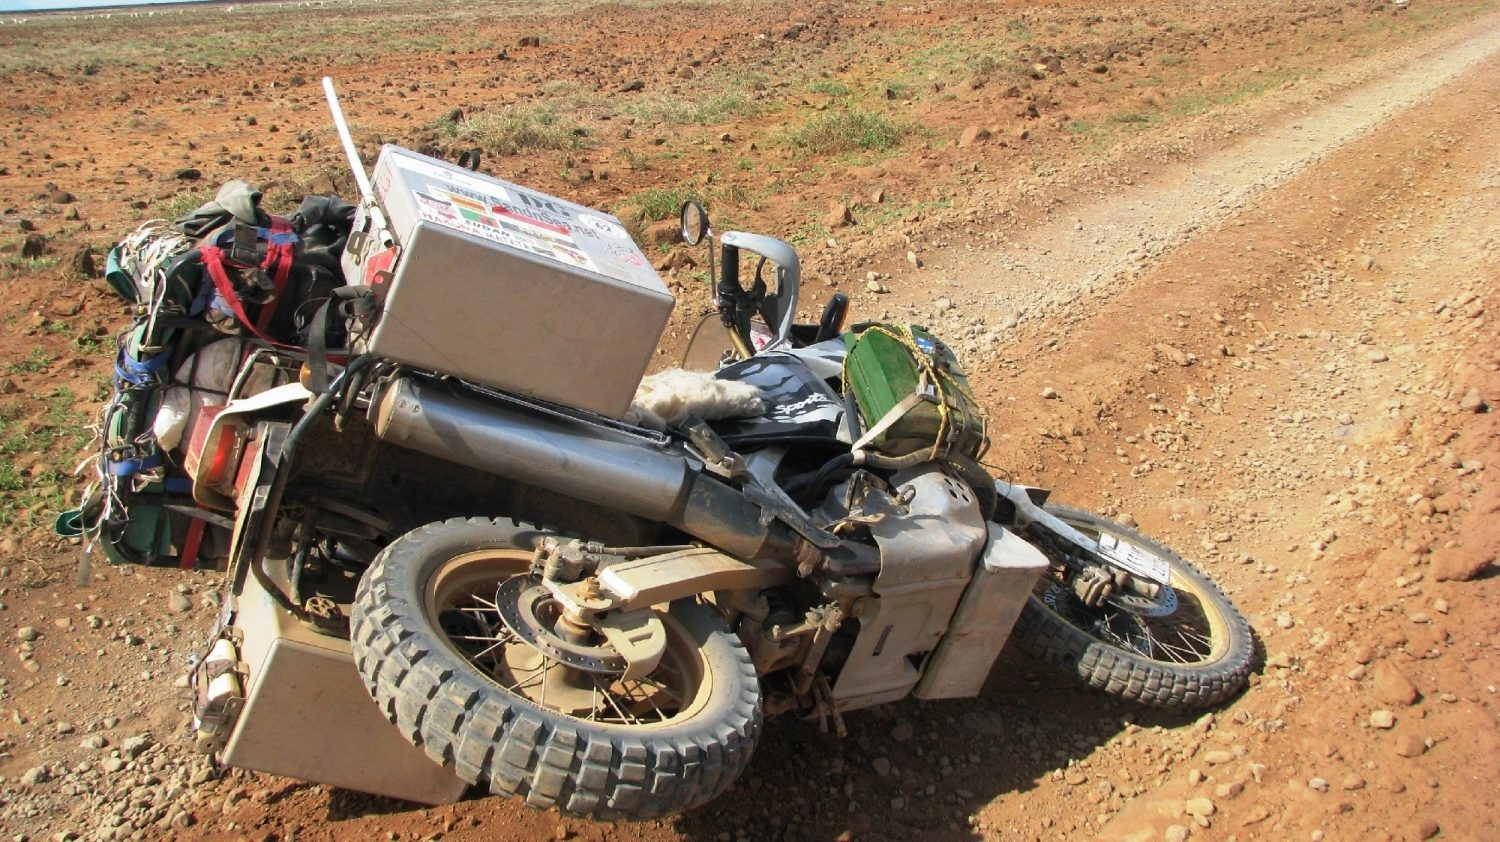 Lifting a dropped motorcycle